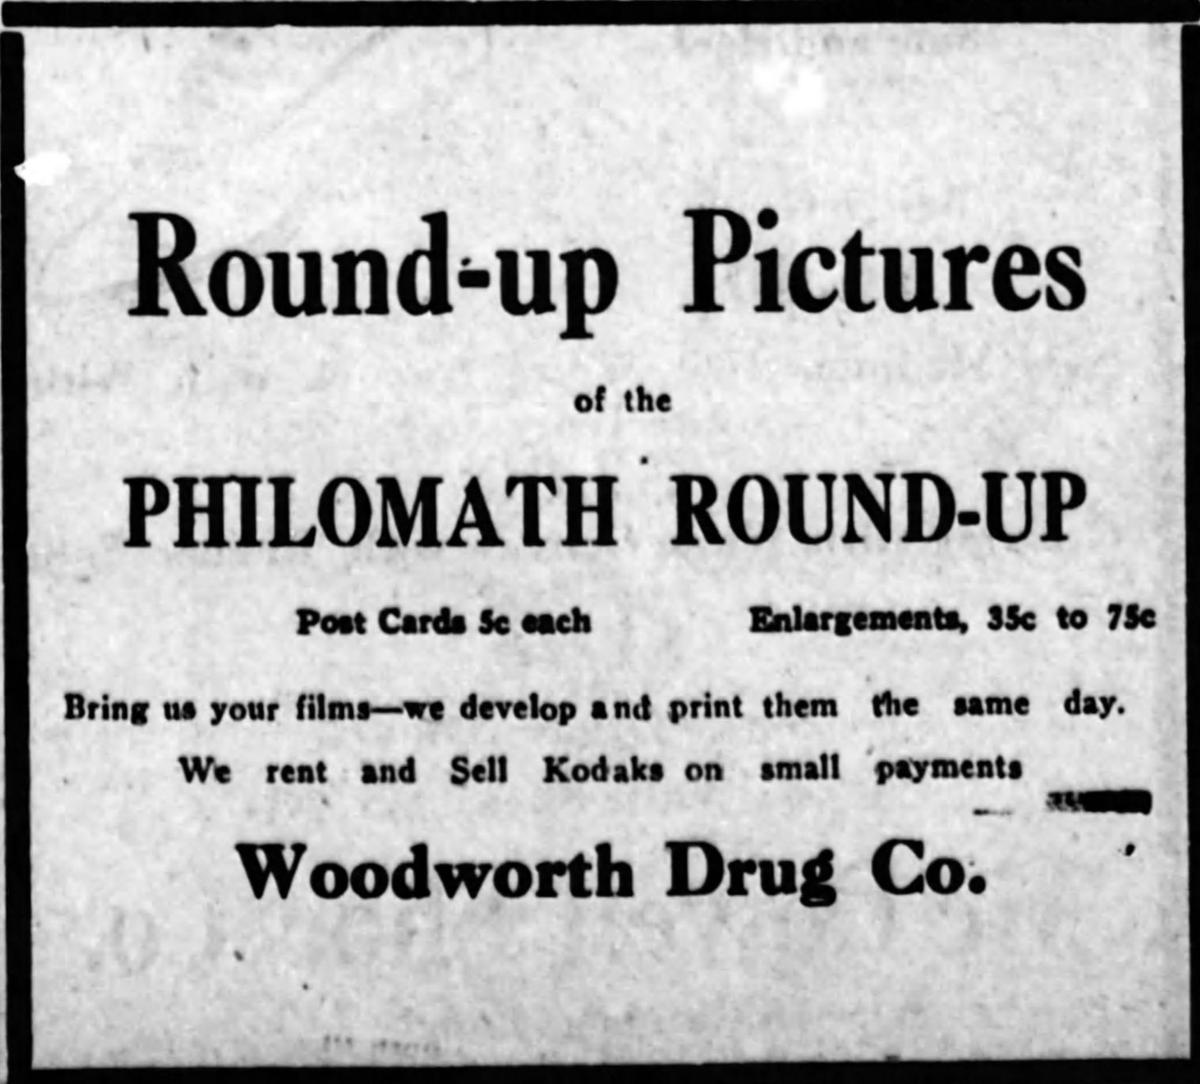 From the Past: 1917 Round-Up Pictures